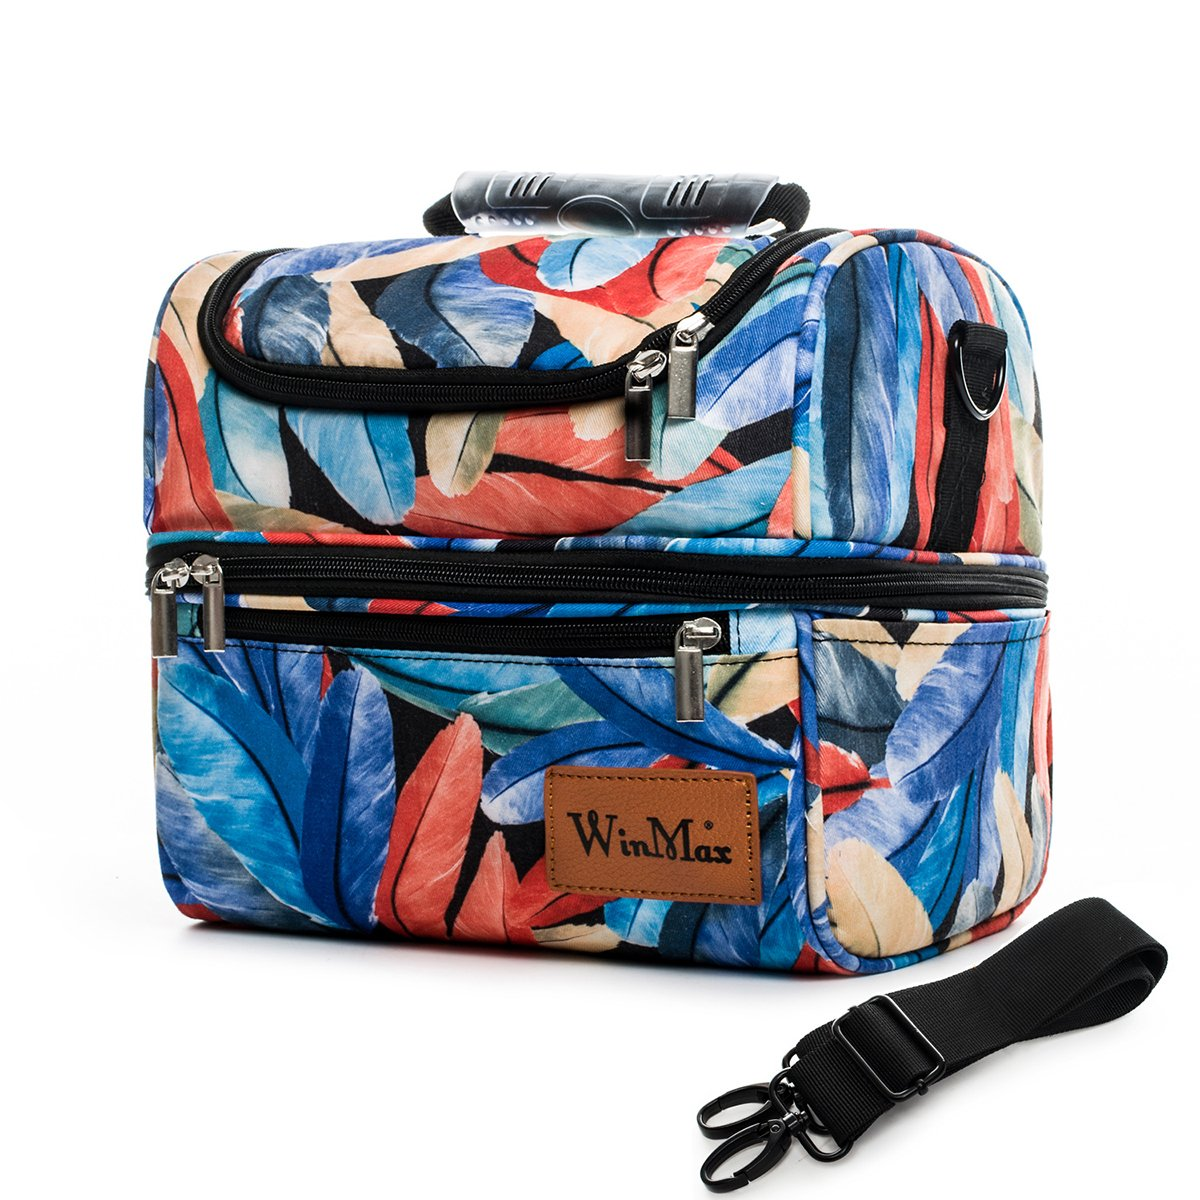 Double Deck Insulated Lunch Bag Men Women Large Tote Cooler Bag Shoulder Strap (Flowers) Winmax